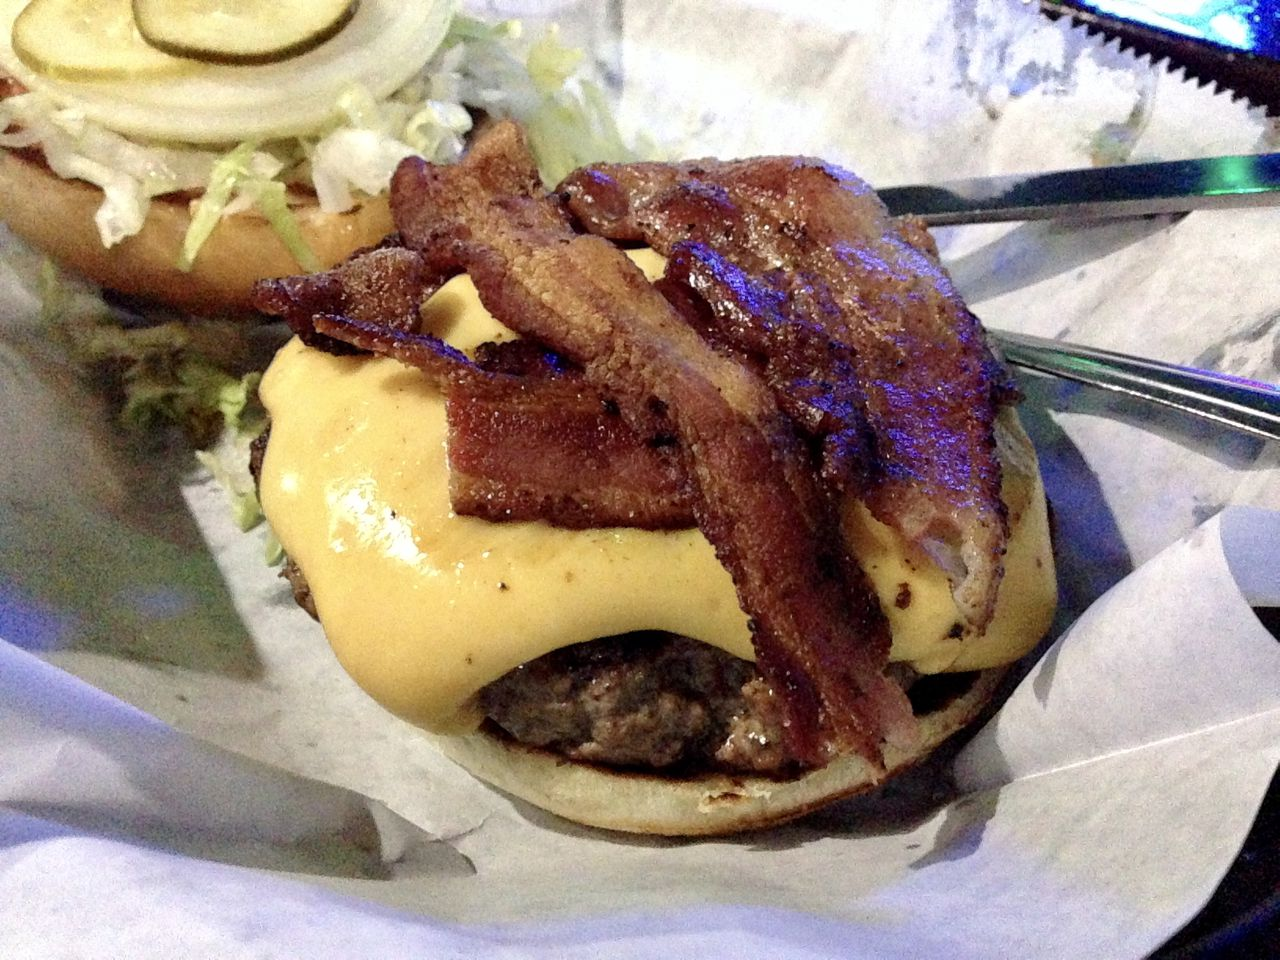 We're back! The search for Michigan's Best Burger wraps up this week